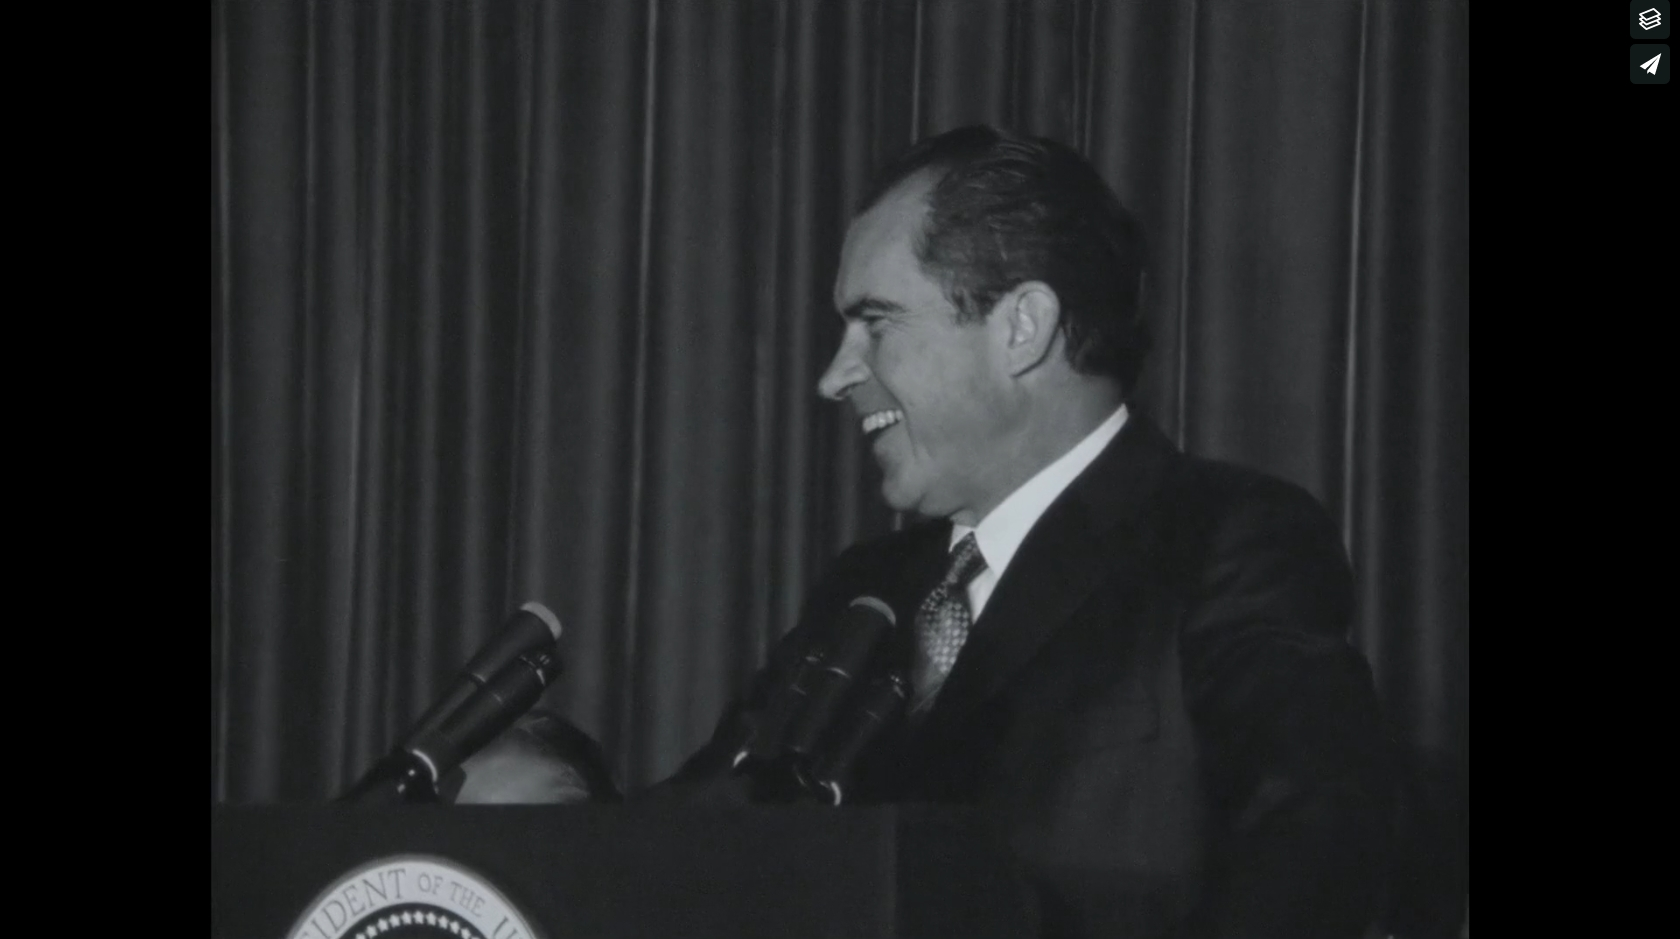 NIXON SPEAKS AT THE BURLINGTON AIRPORT   President Nixon visits Burlington Vermont Airport, October 17, 1970. 16mm footage, B&W, some audio, some silent, Reel 2 of 2     Click the image to view